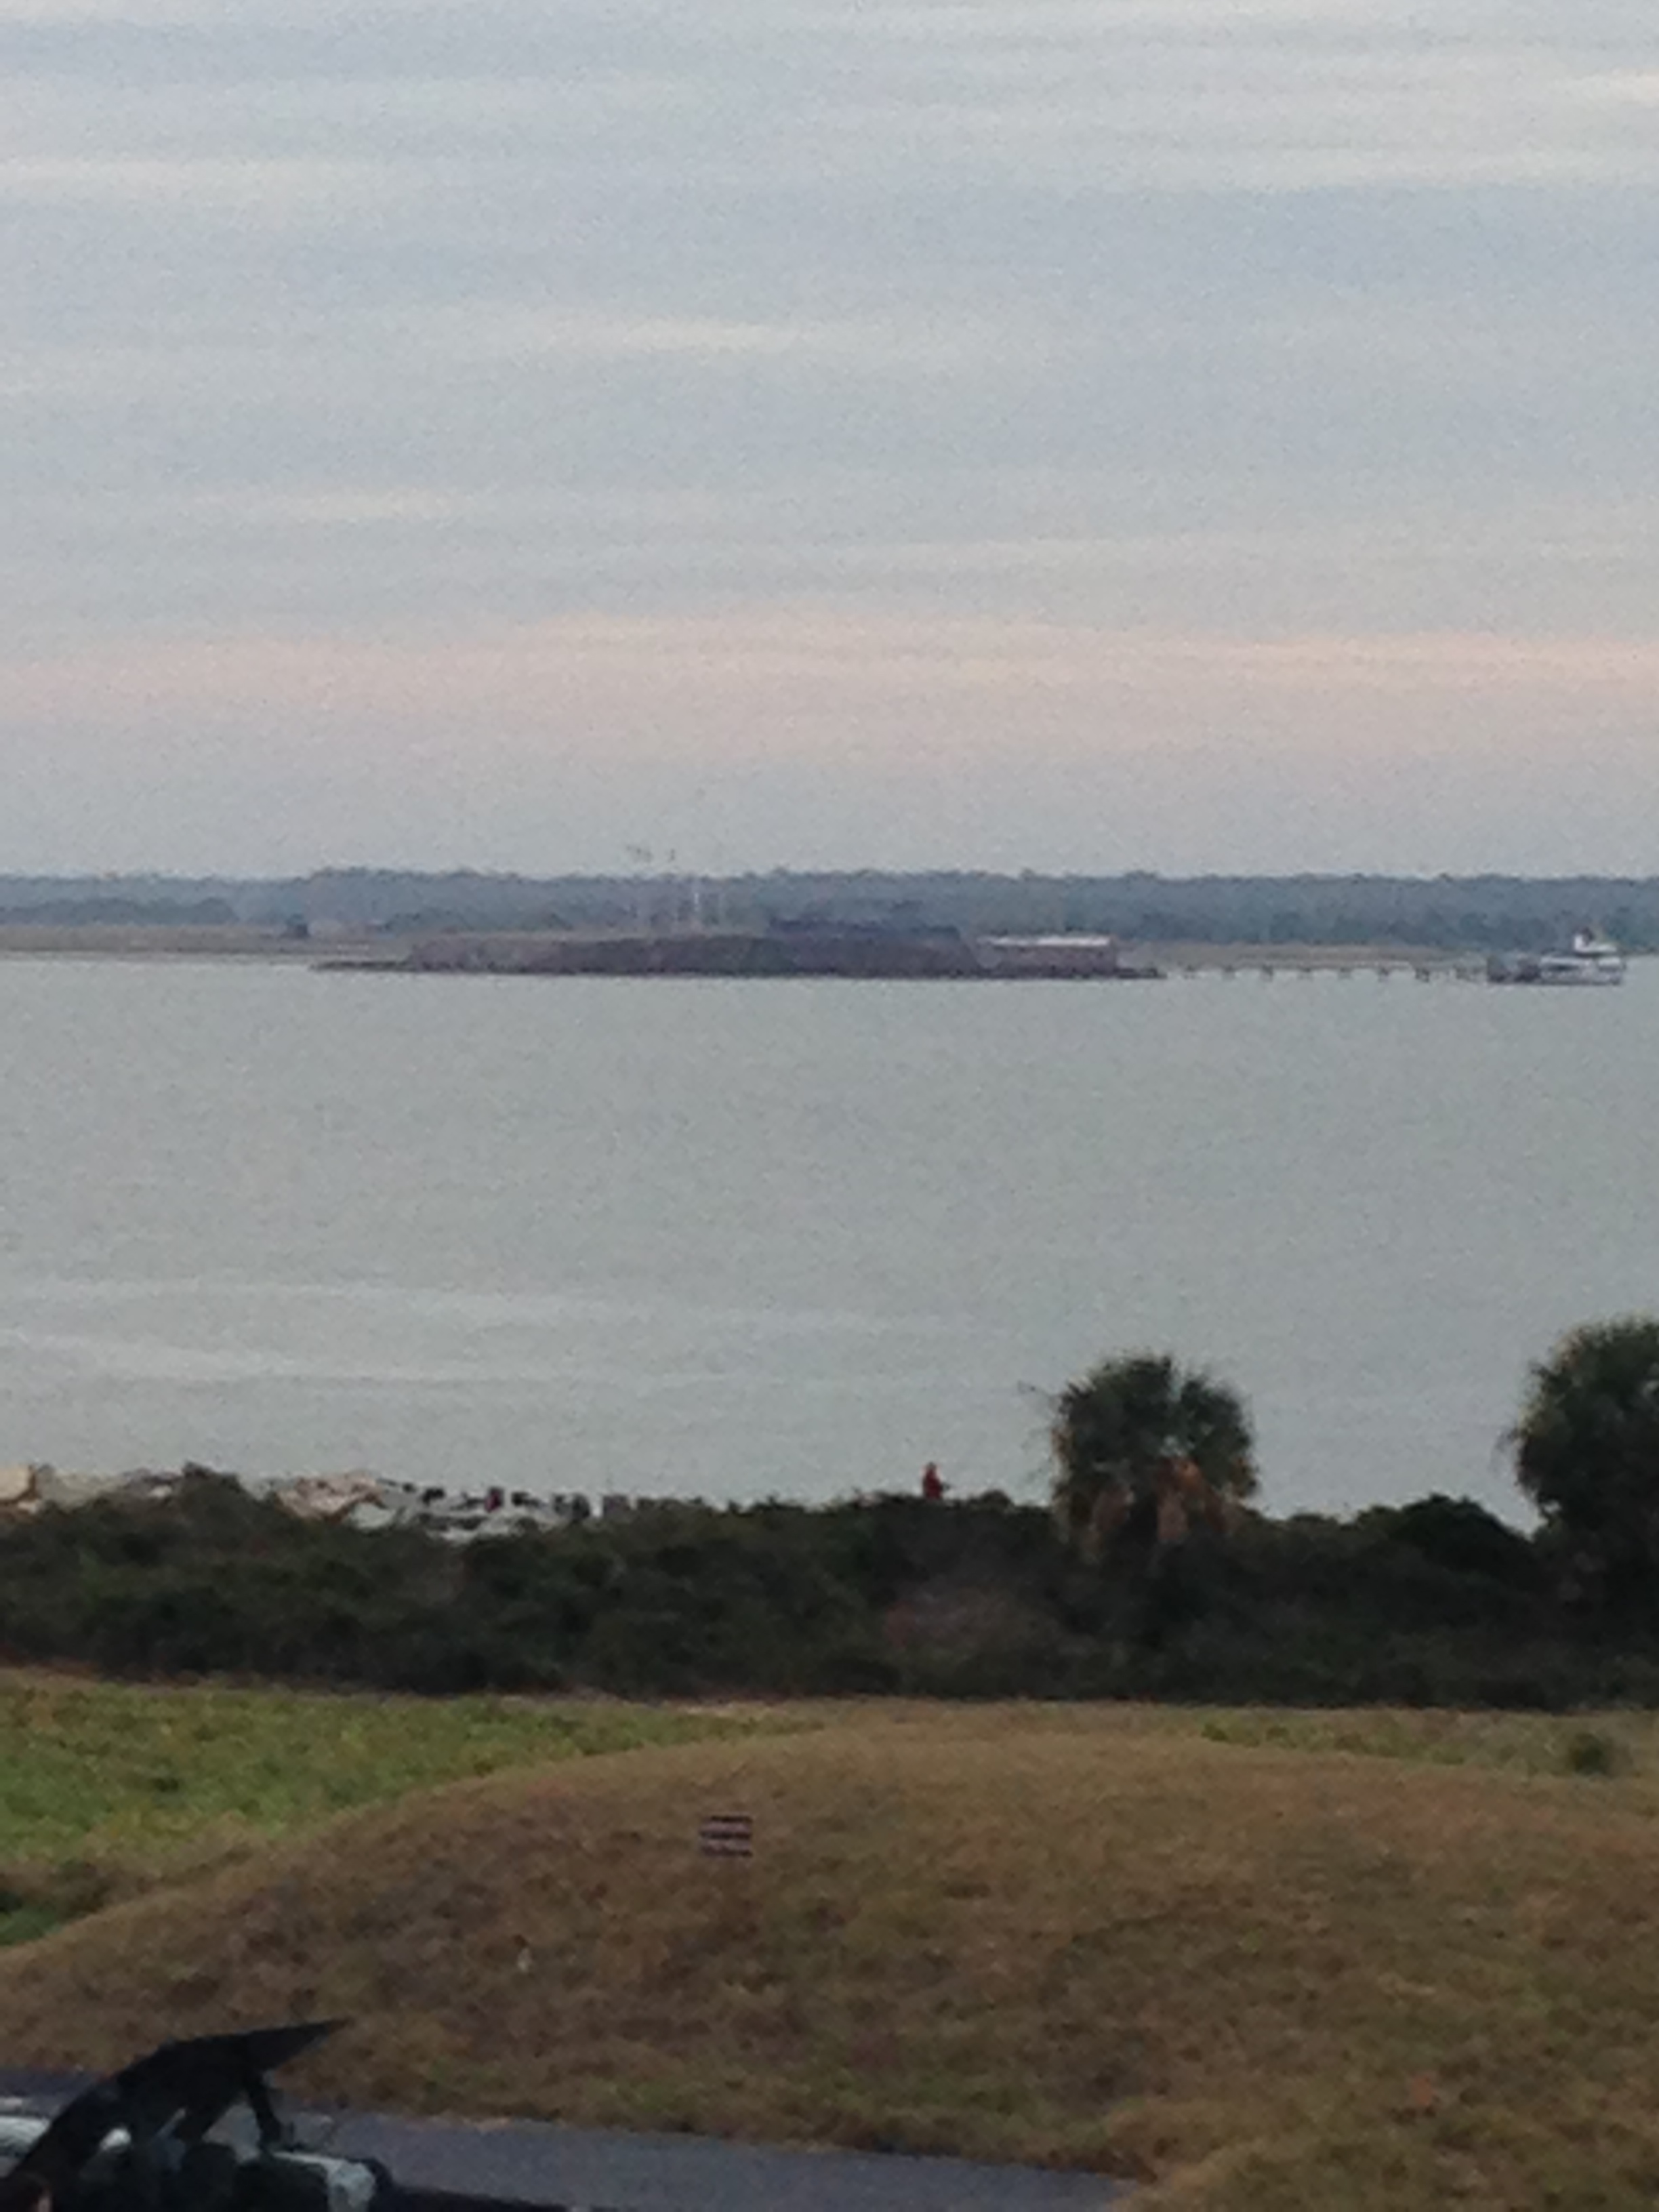 A little better shot of Fort Sumter.